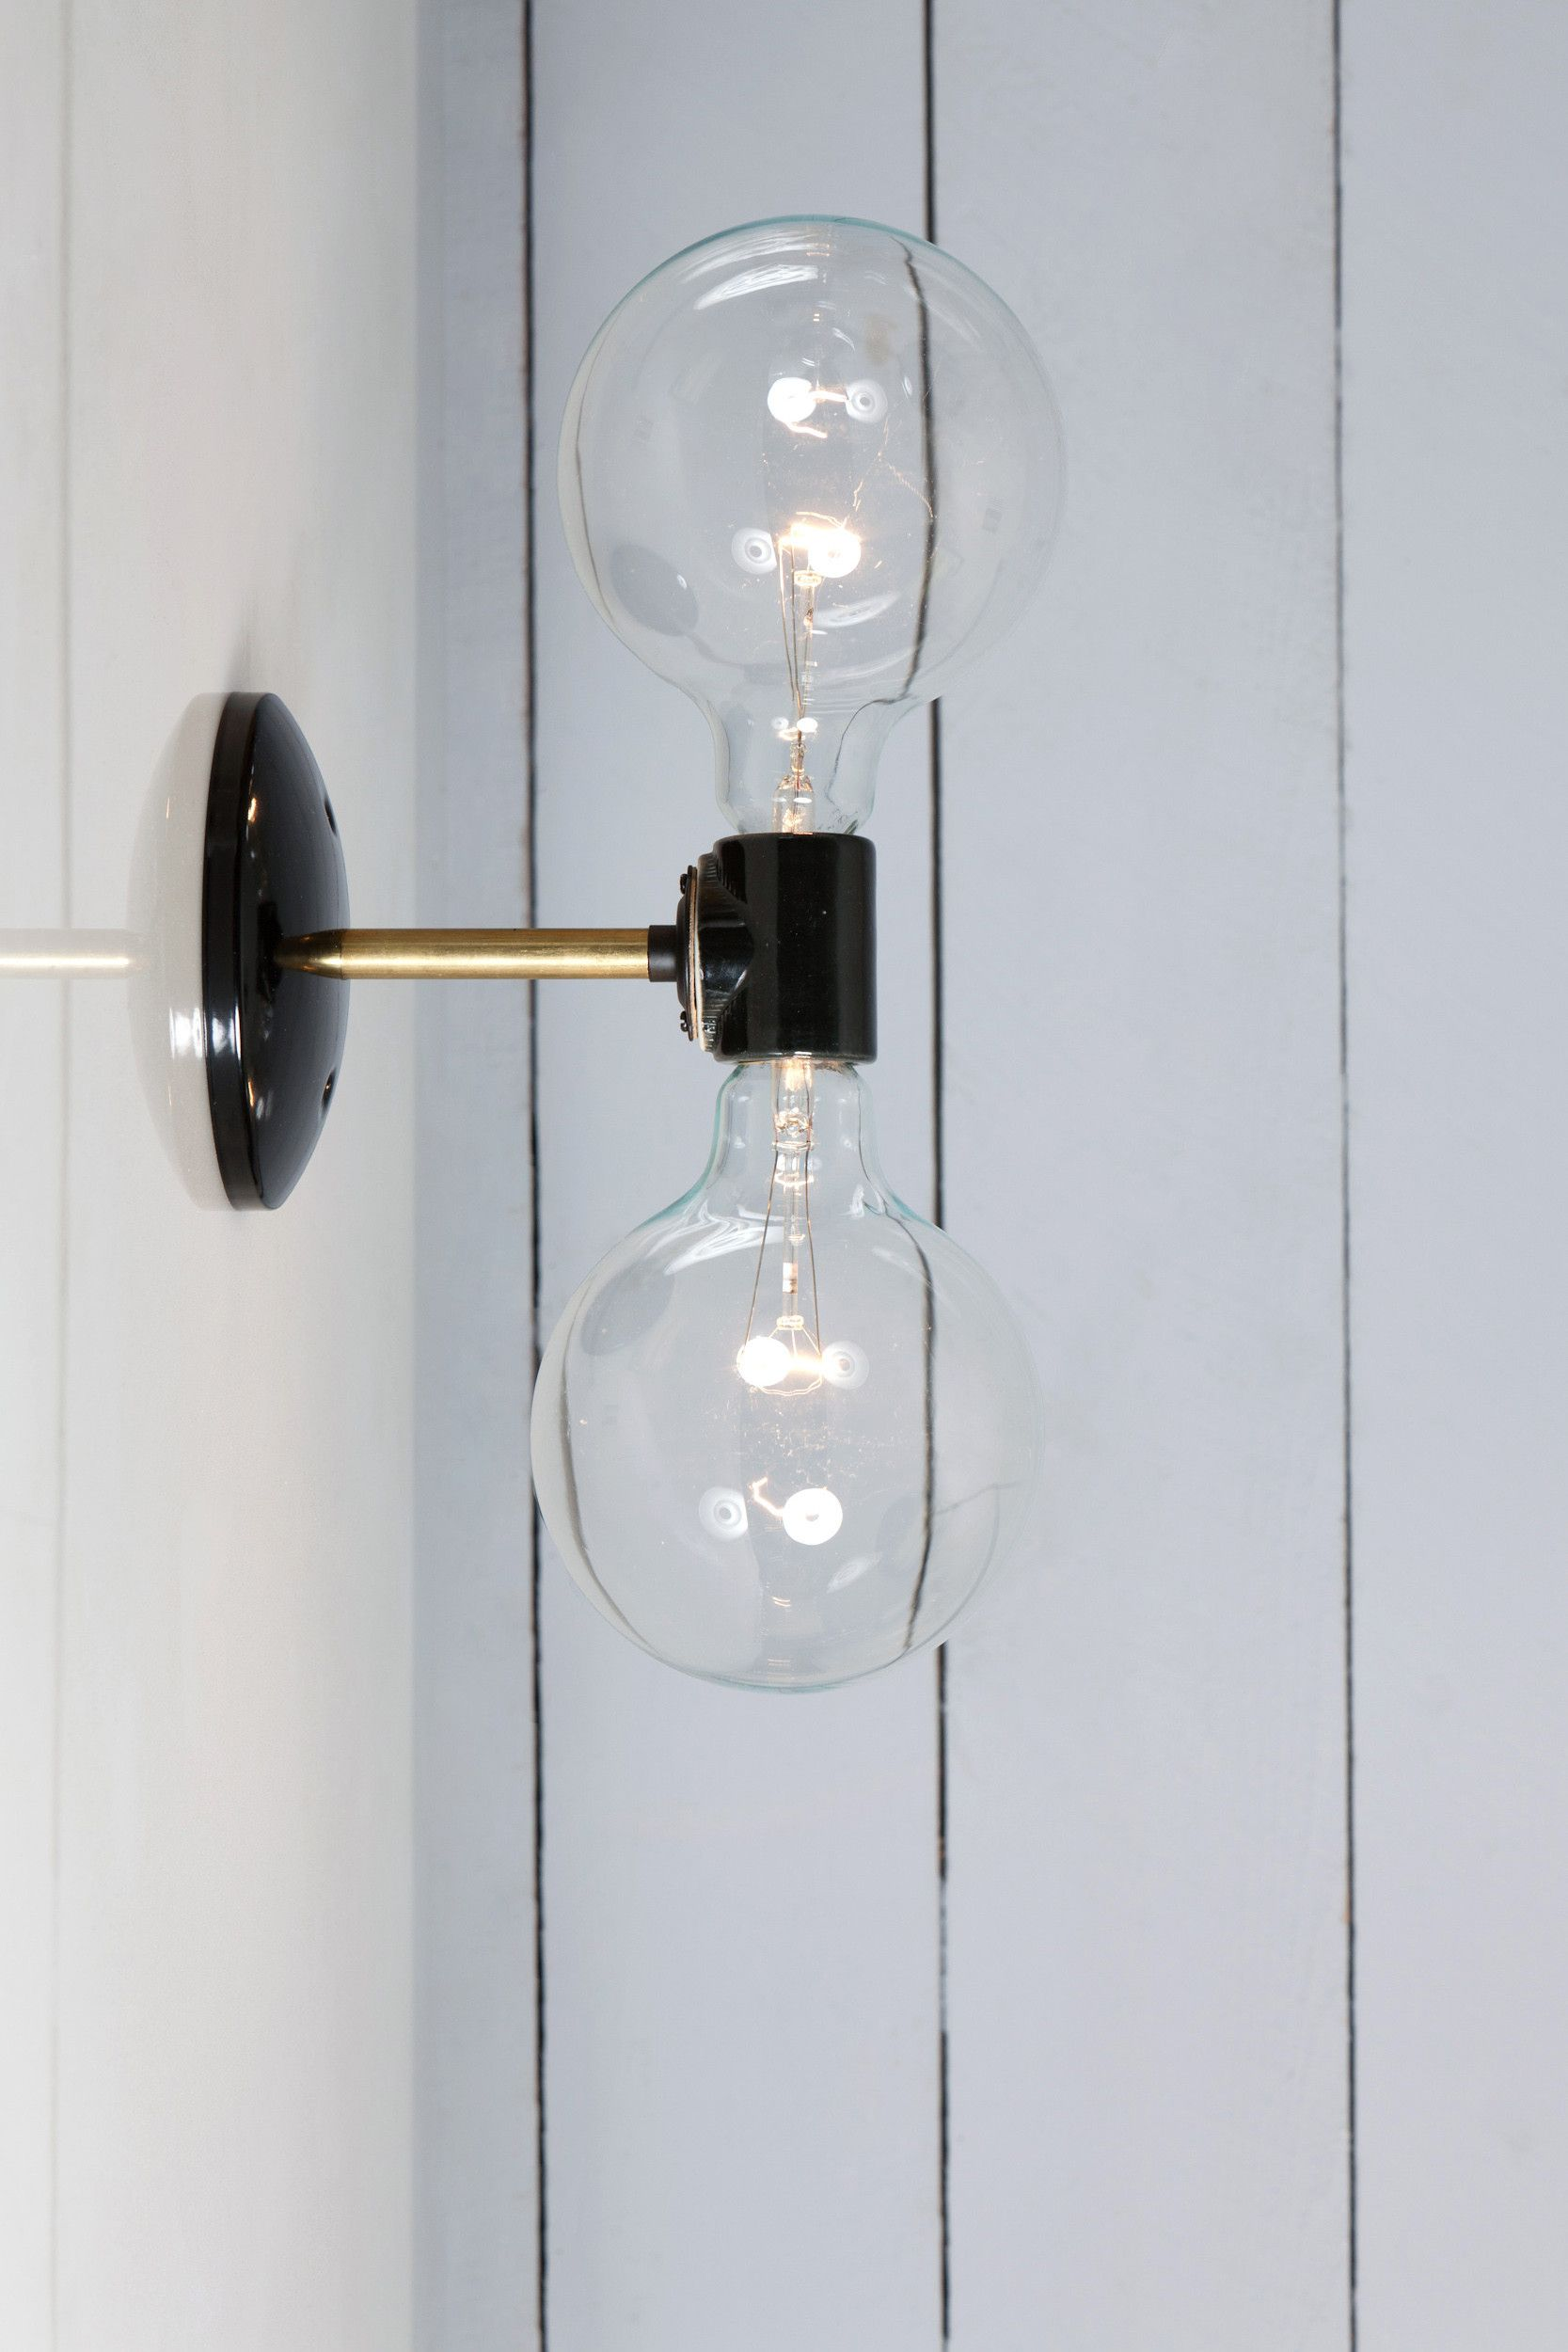 Double Br Wall Sconce Light Bare Bulb Lamp In 2019